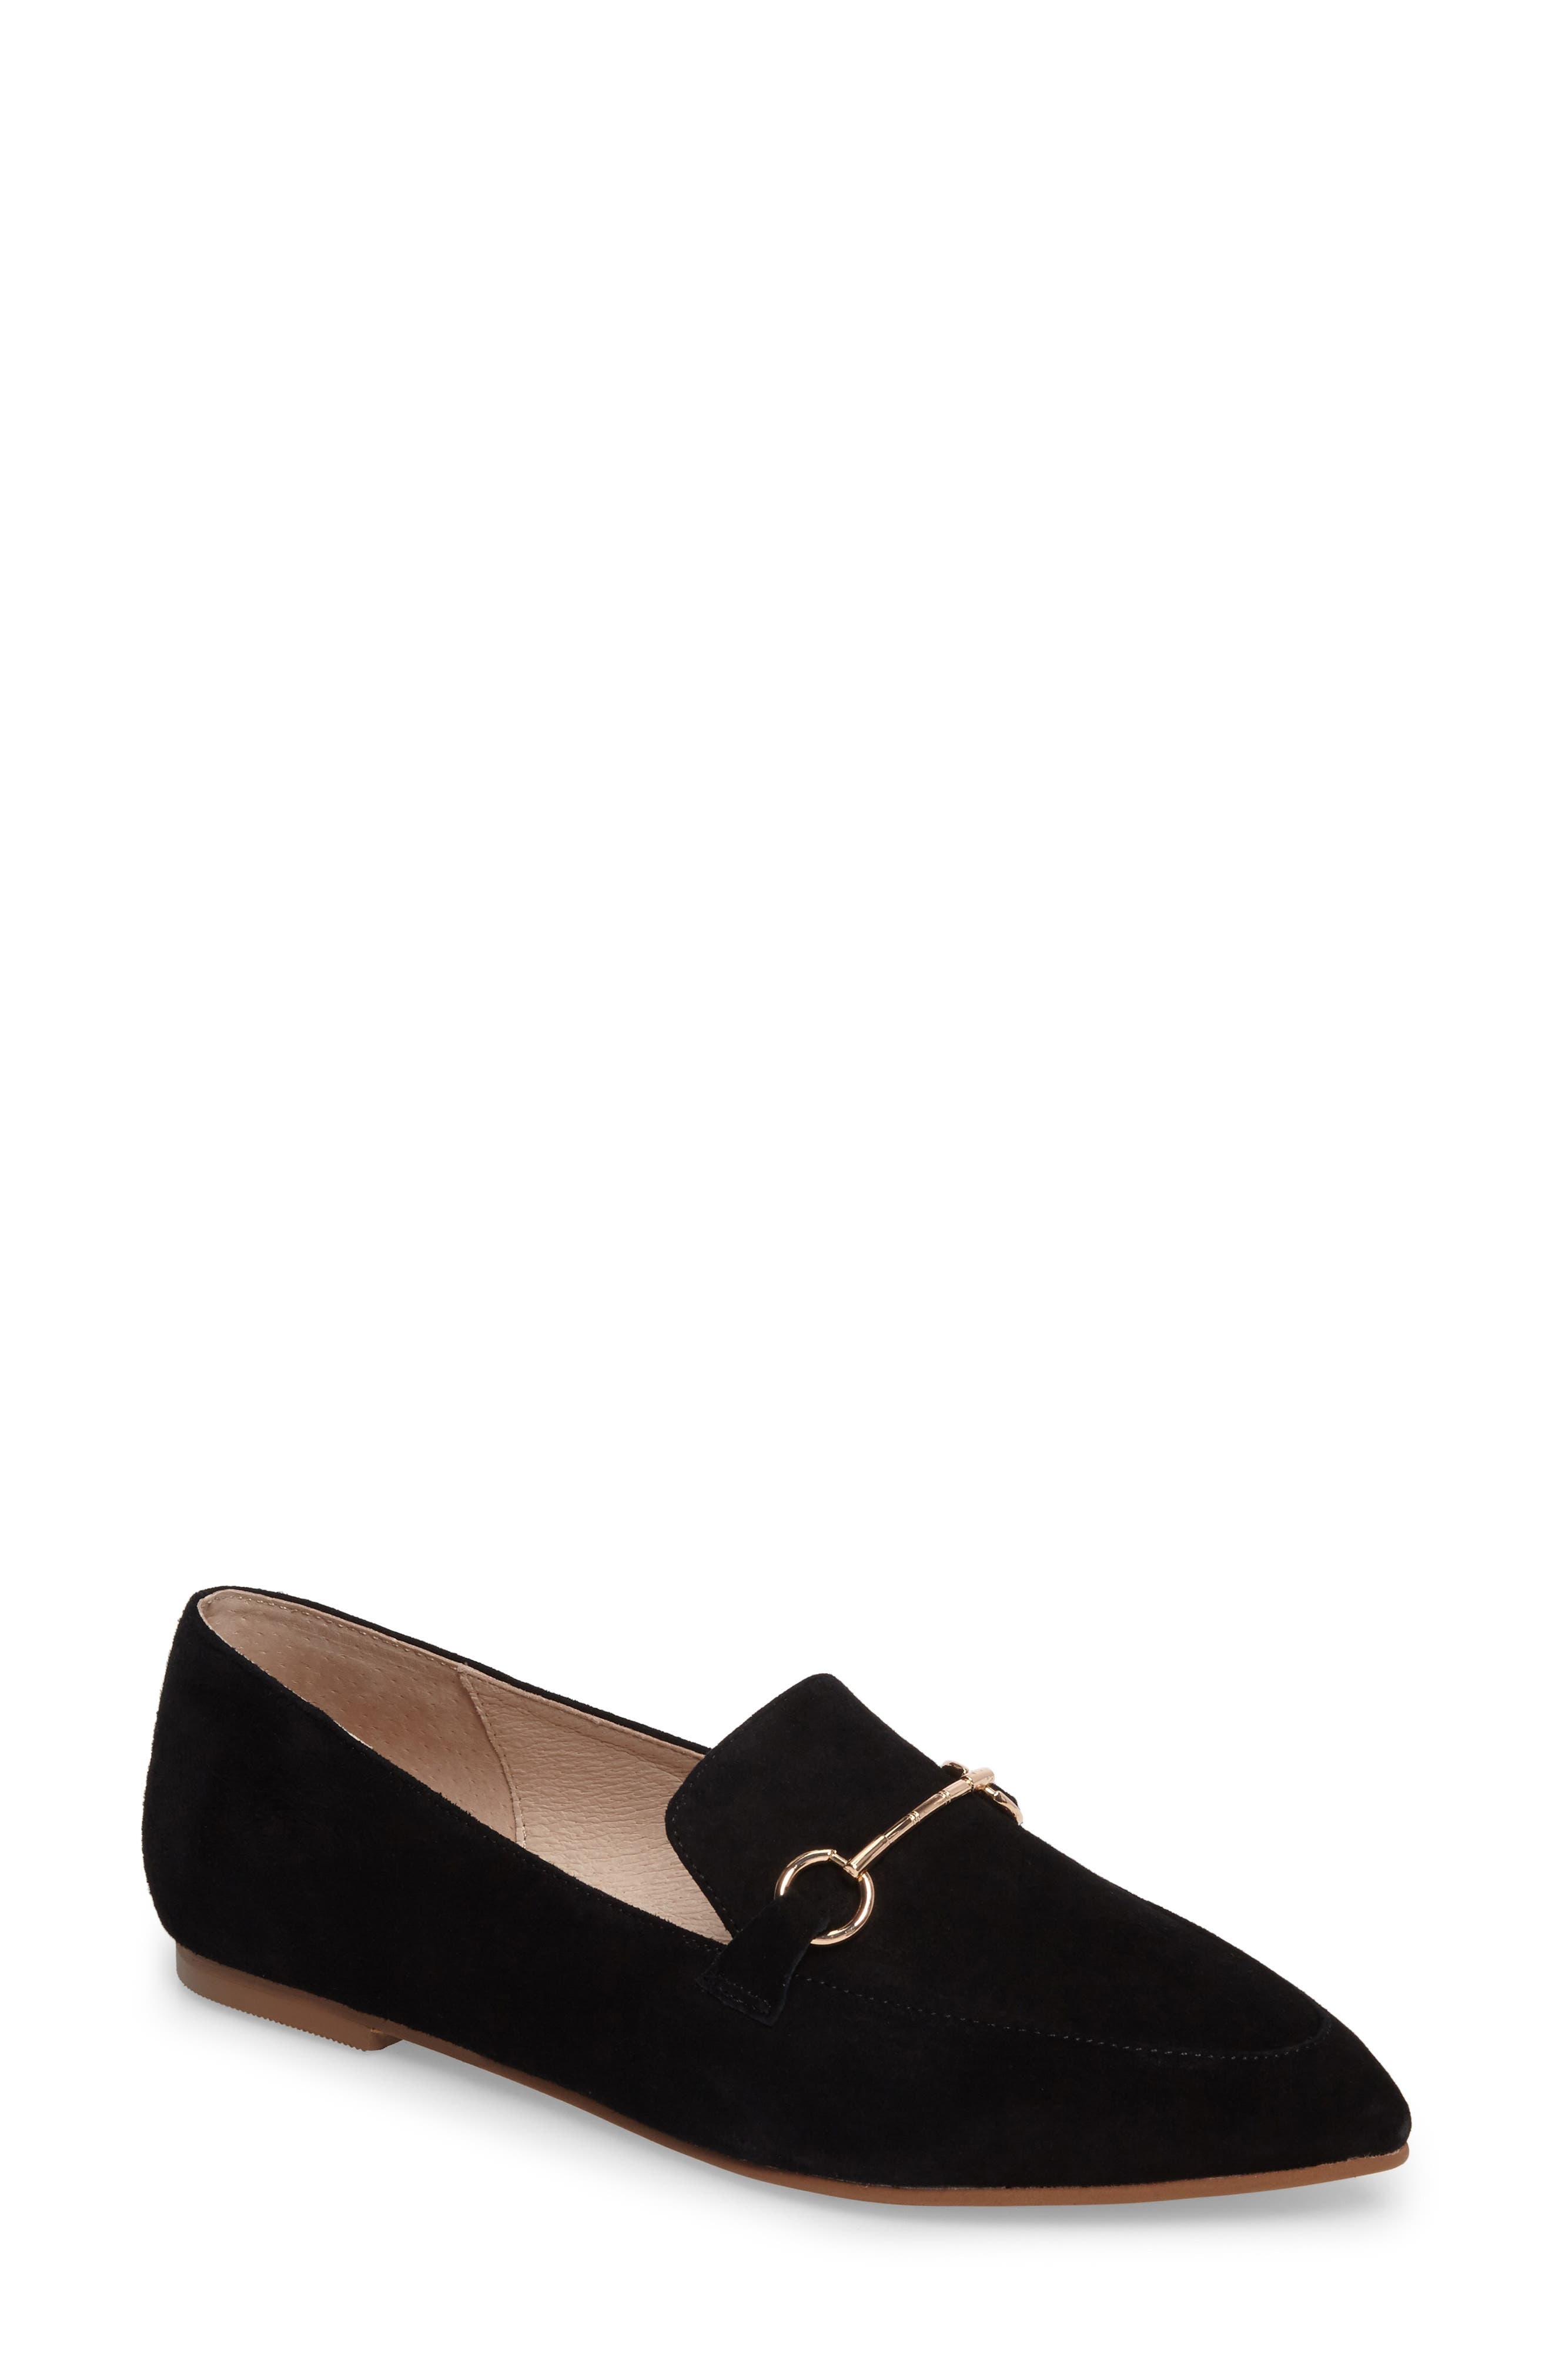 Cambrie Loafer Flat,                             Main thumbnail 1, color,                             001